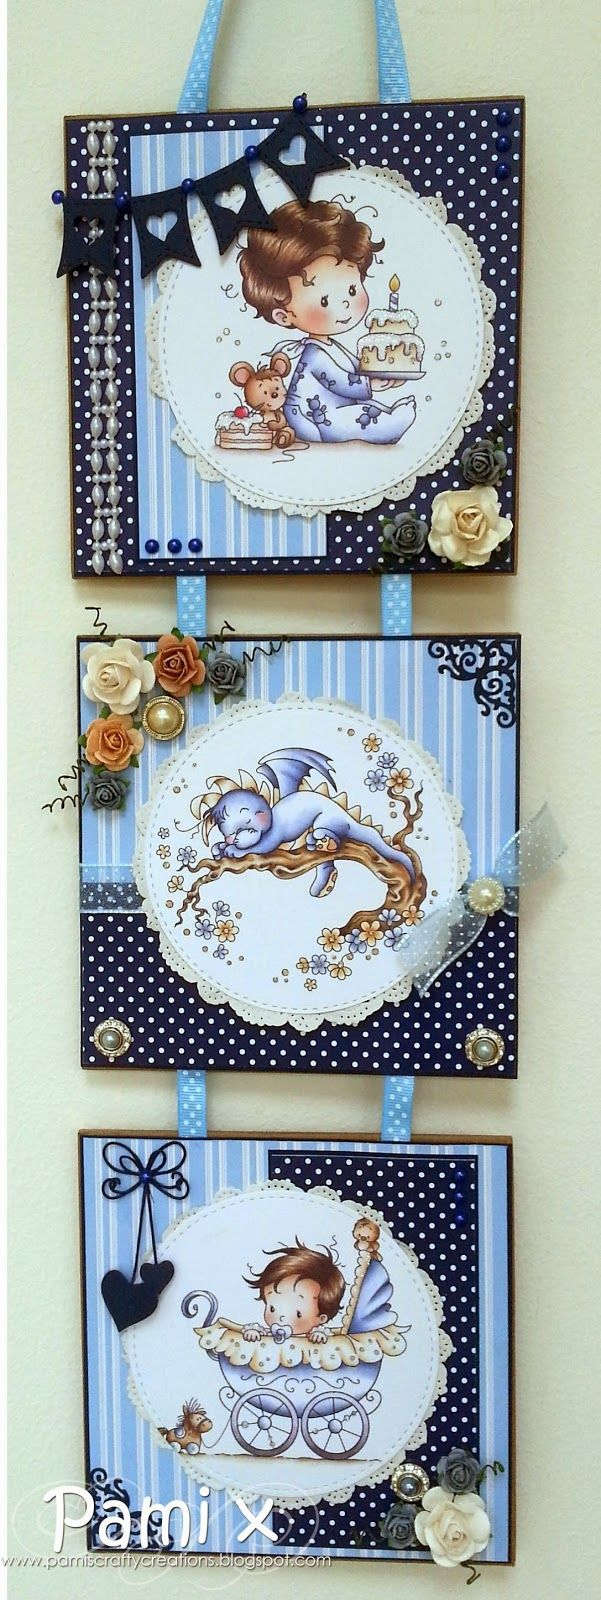 Pami's Crafty Creations: New Challenge at the Hobby House